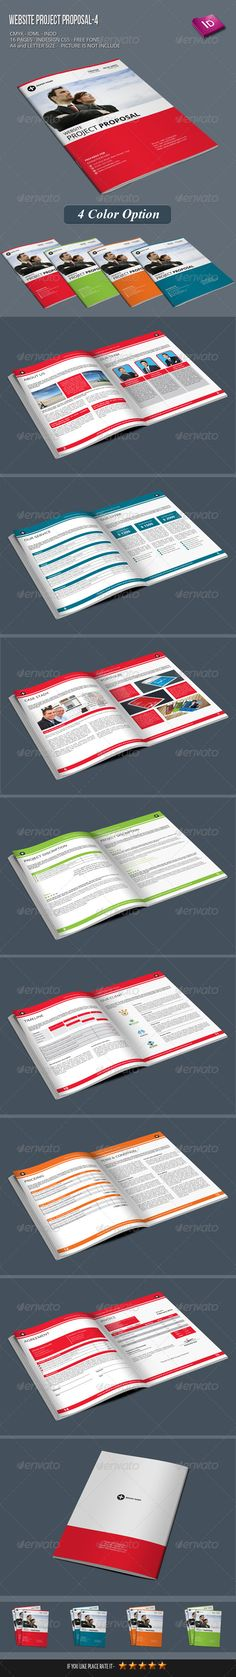 Proposal Stationery printing, Project proposal and Proposal - project proposal letter